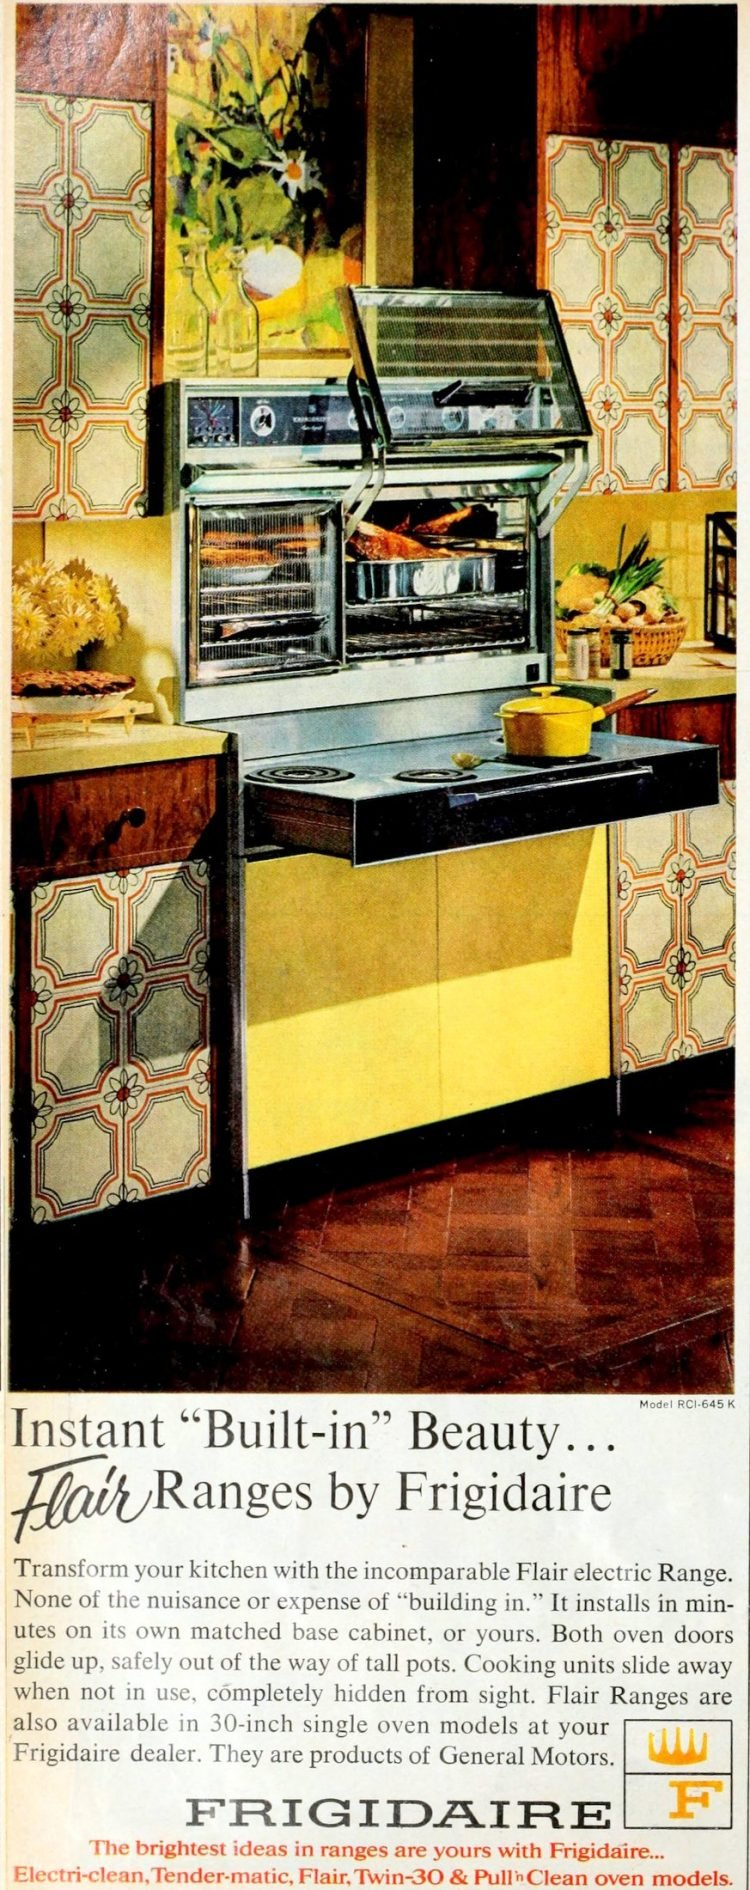 Yellow kitchen with built-in Flair range and ovens from the late 1960s